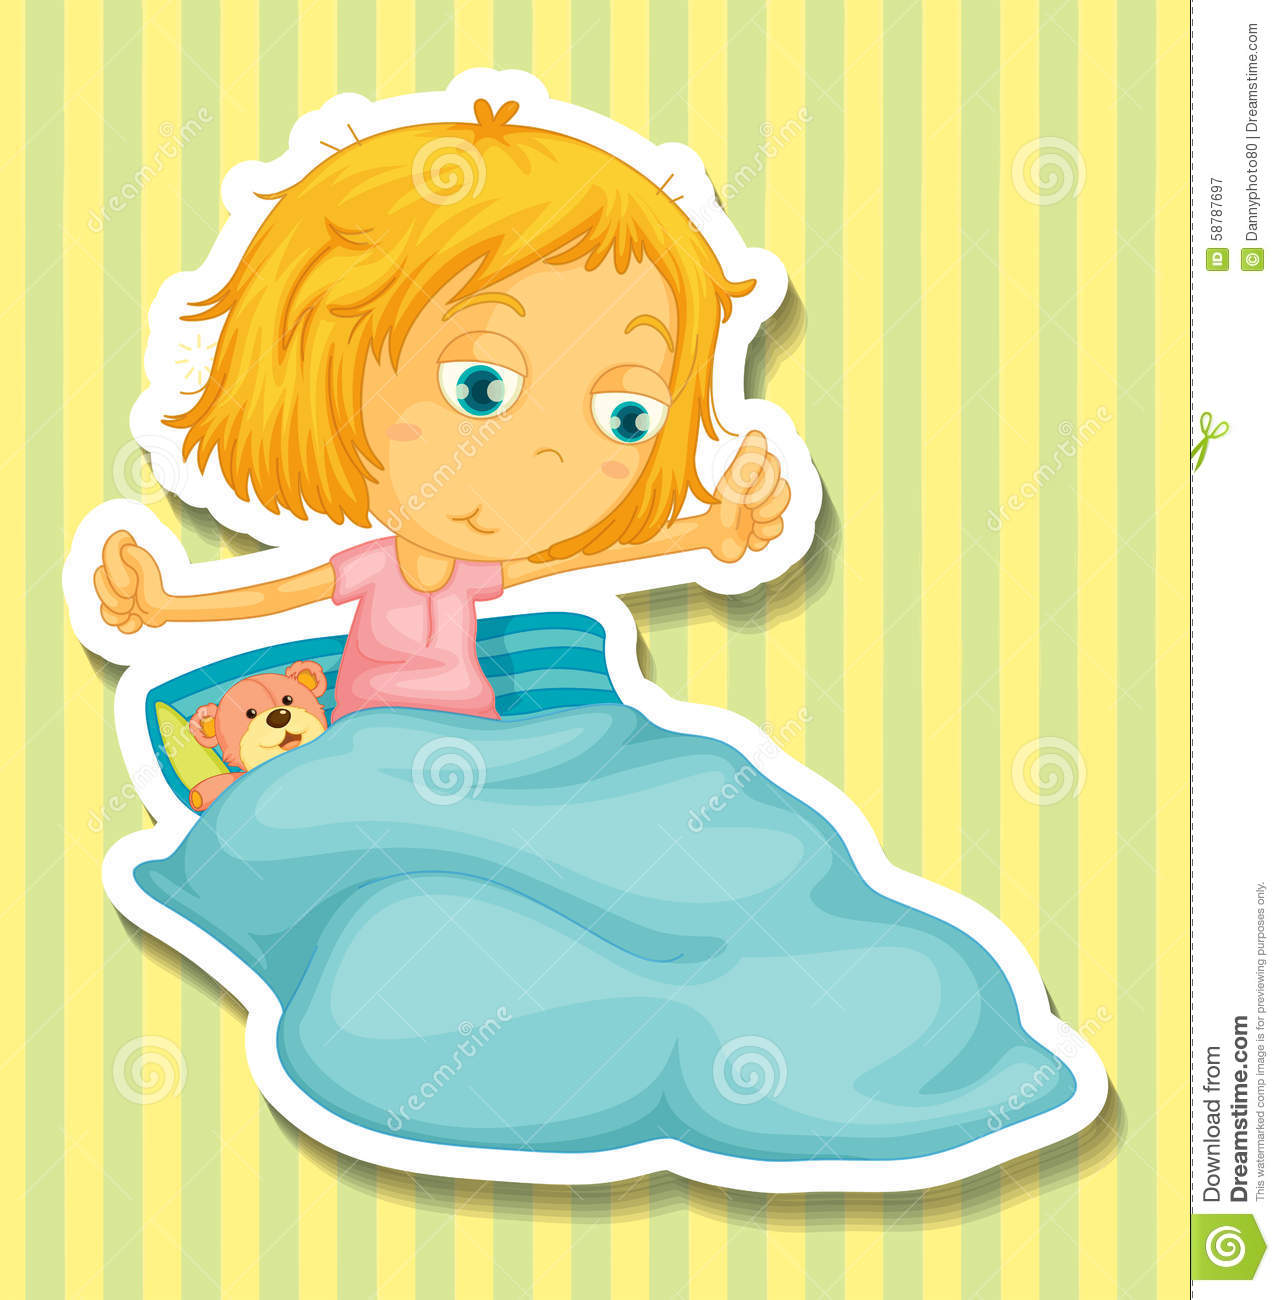 little girl in bed waking up stock vector image 58787697 picture of a girl waking up clipart Awake Clip Art